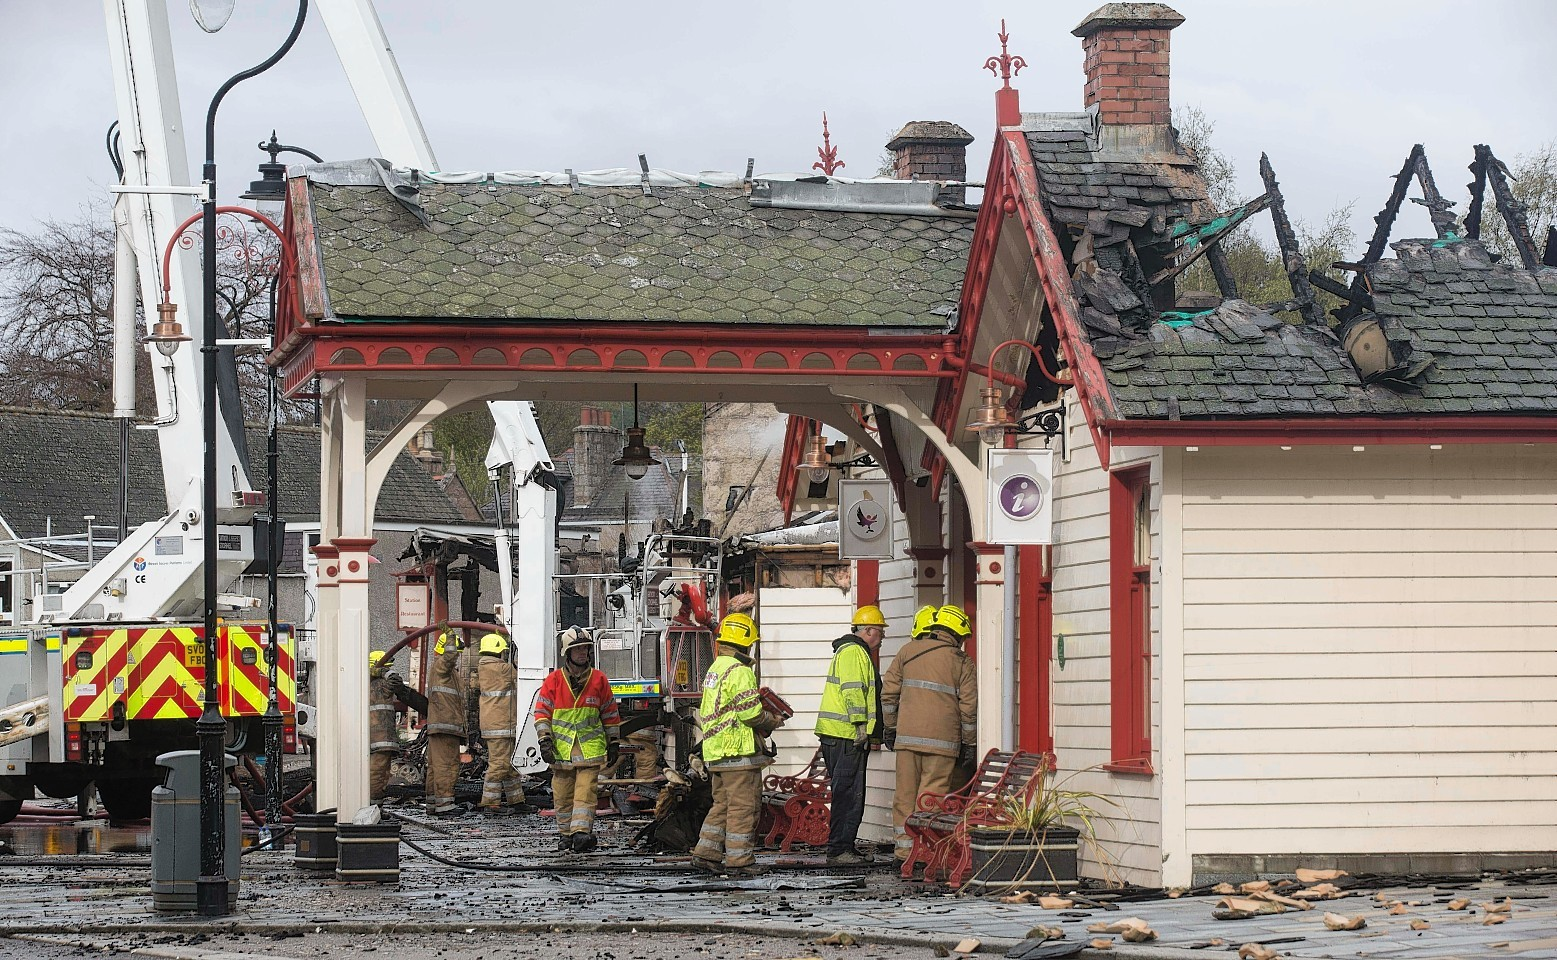 The old railway station in Ballater has been ruined by the fire